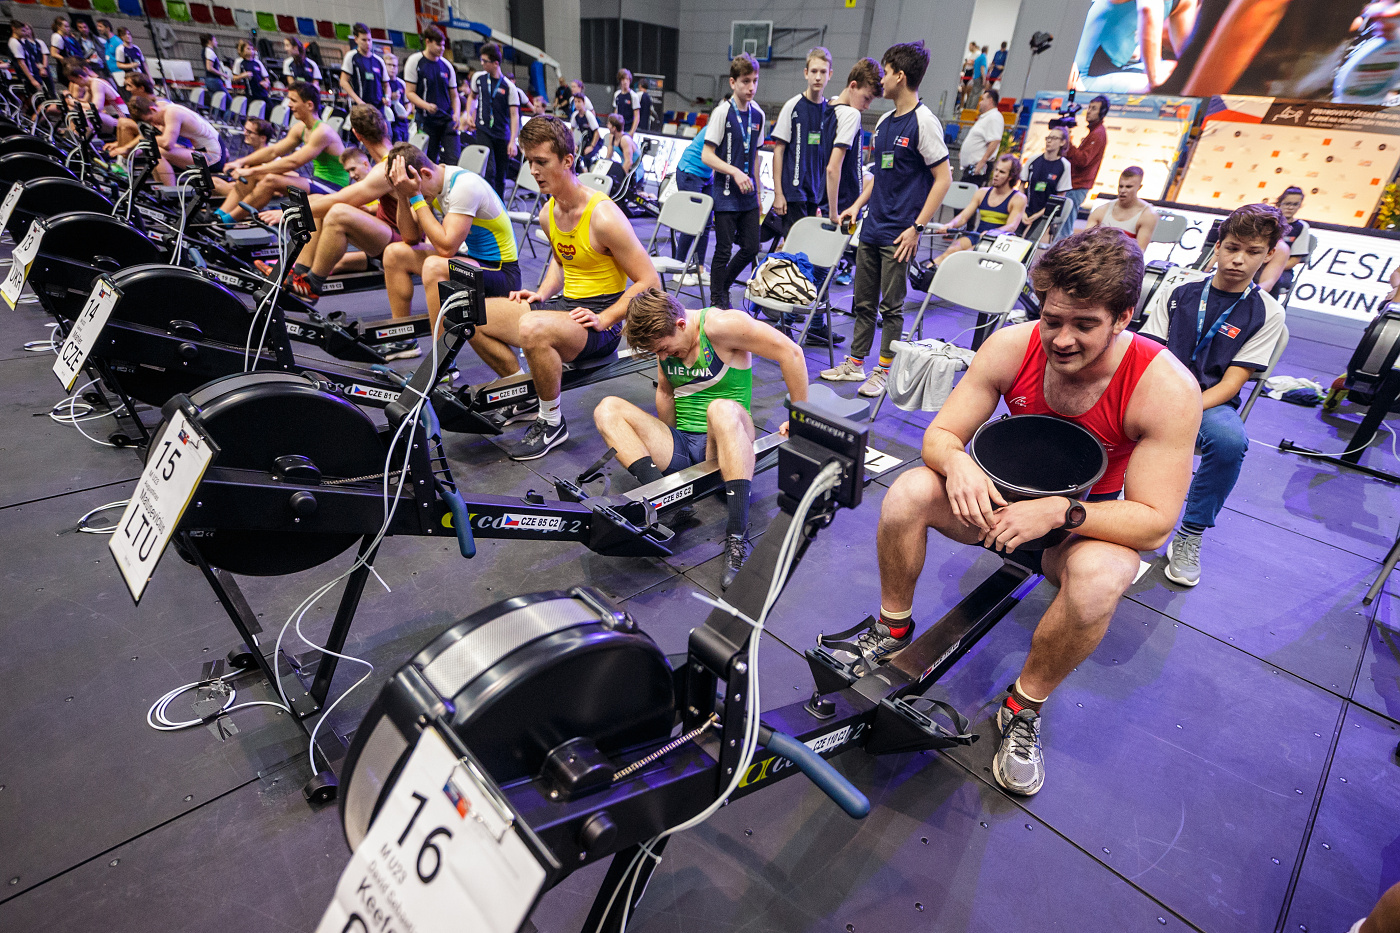 IndoorRowing2019_12